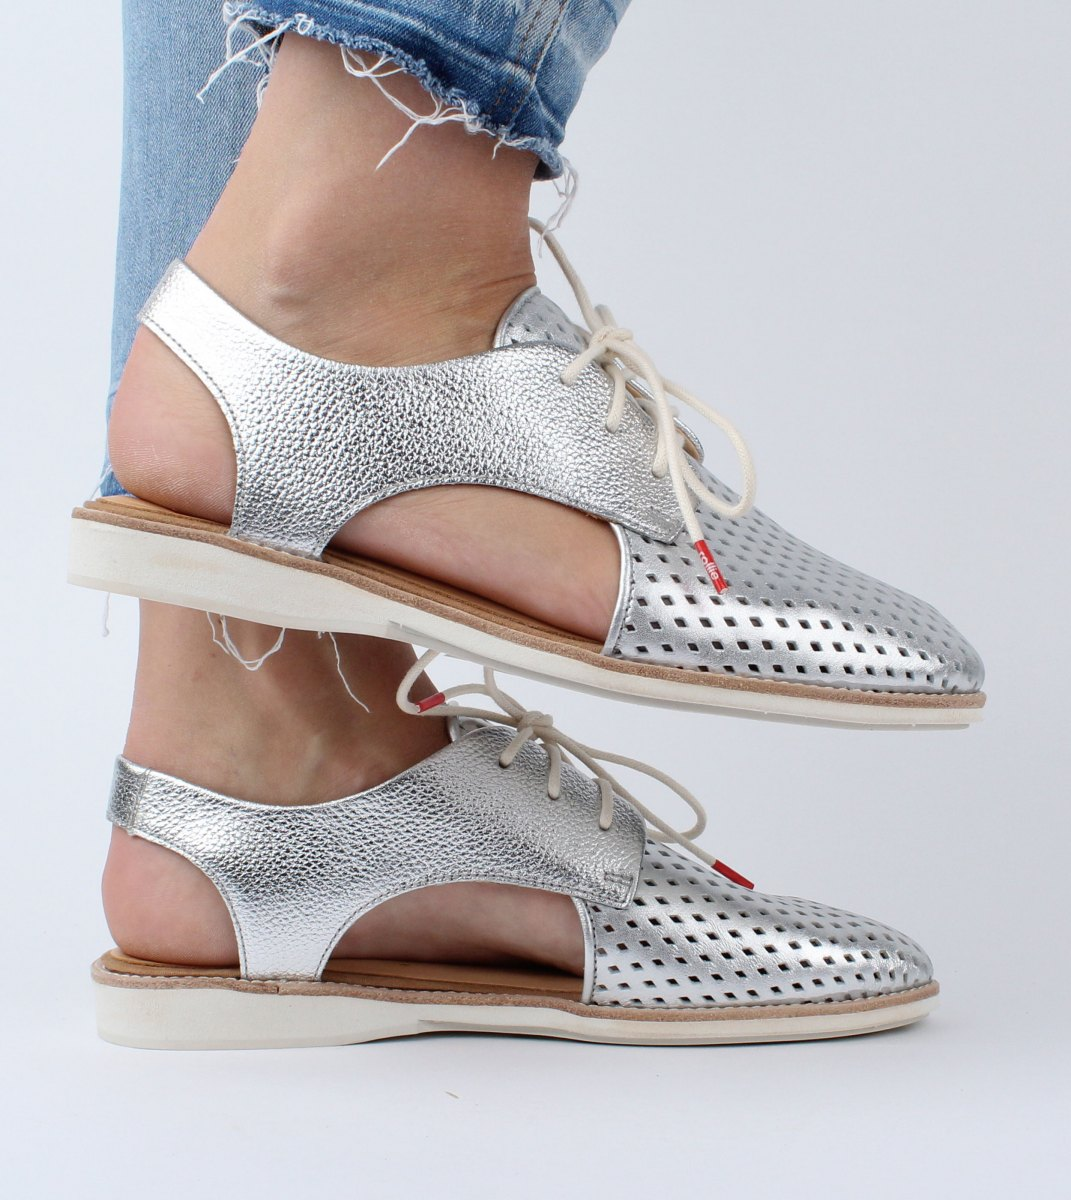 Rollie-Derby_Slingback_Punch-Silver-M2